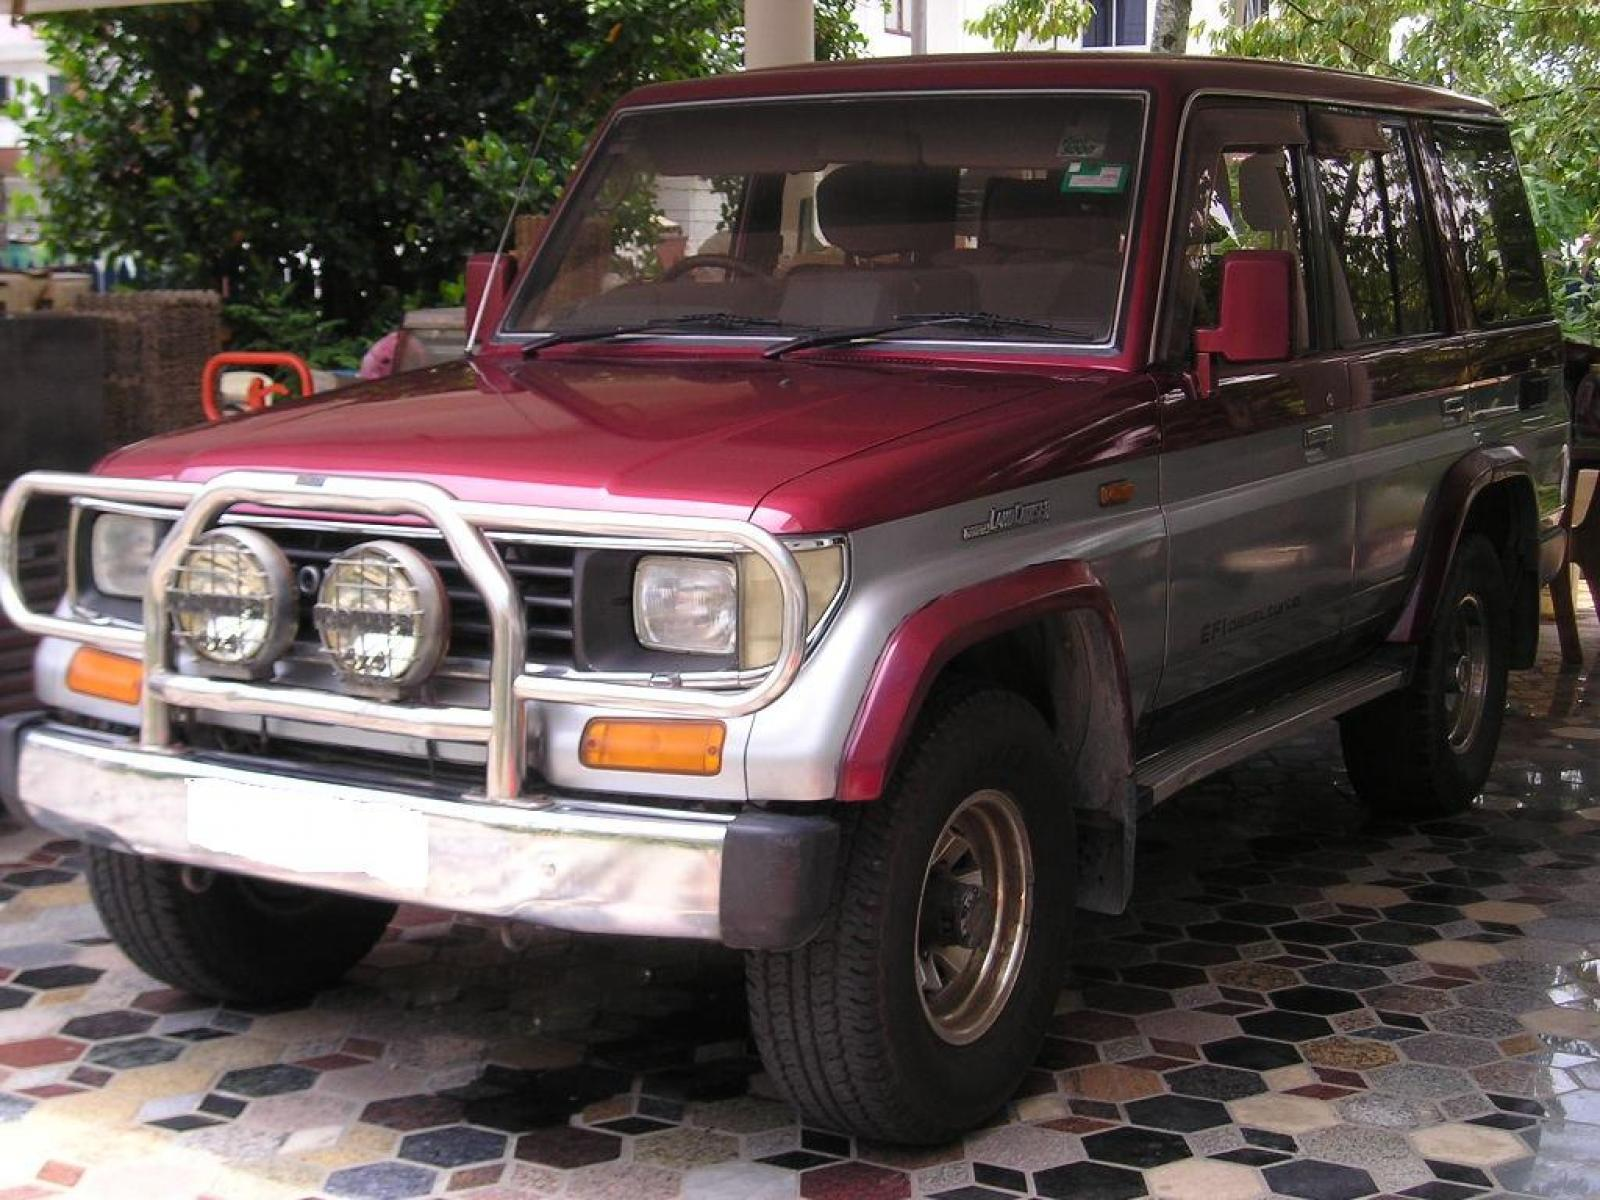 1990 toyota land cruiser 3 toyota land cruiser 3 800 1024 1280 1600 origin